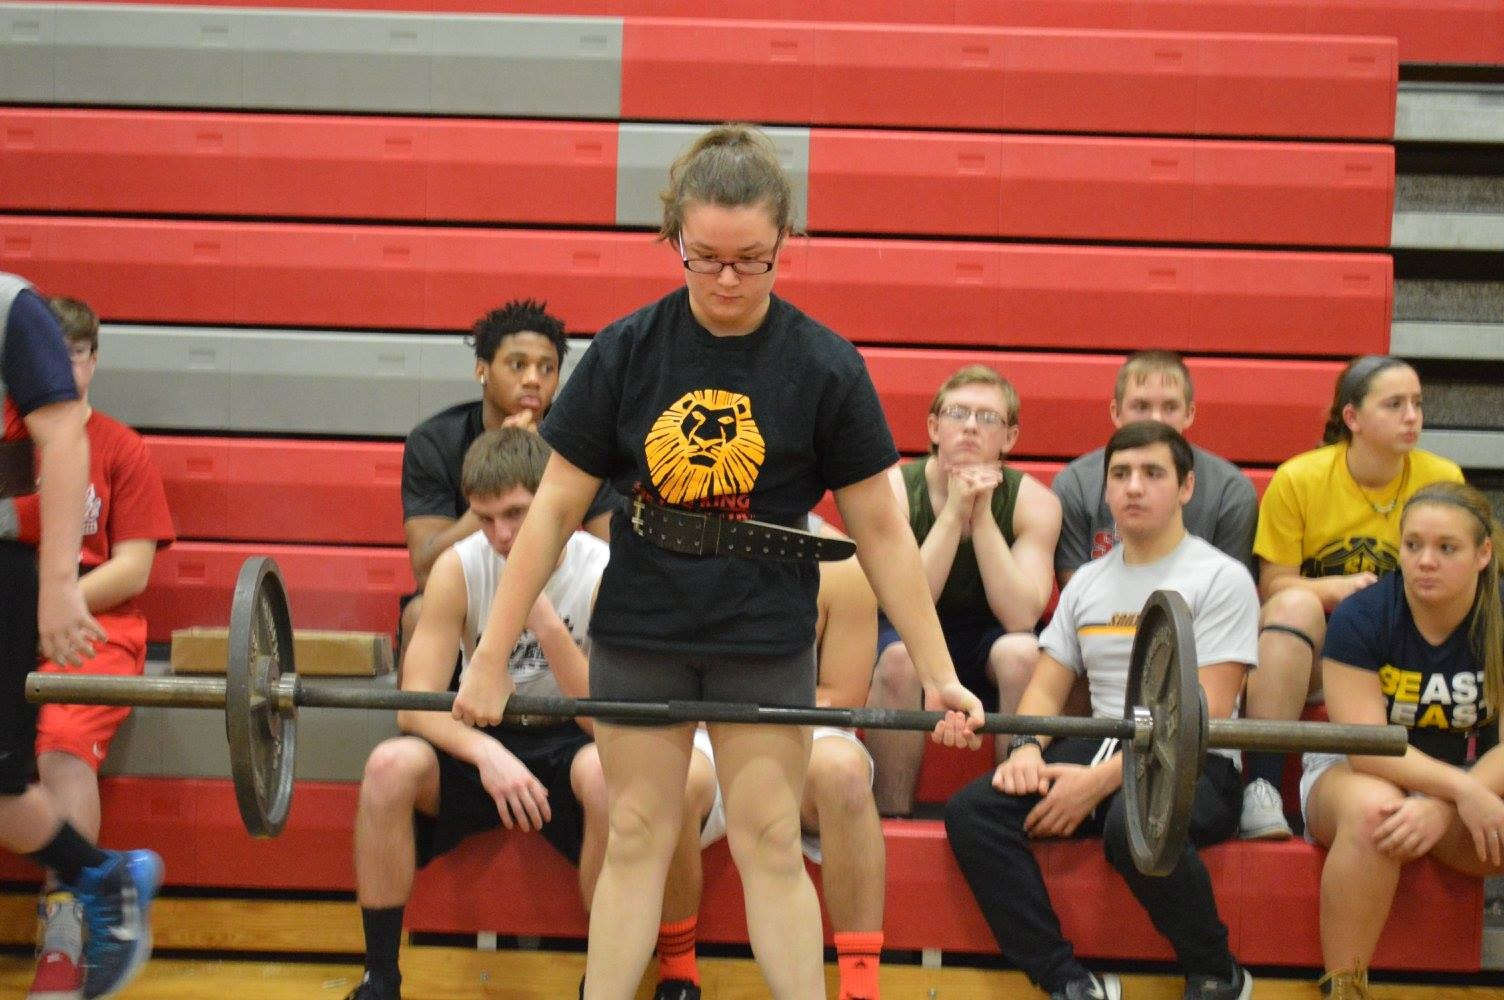 ohio high school state power lifting meet results